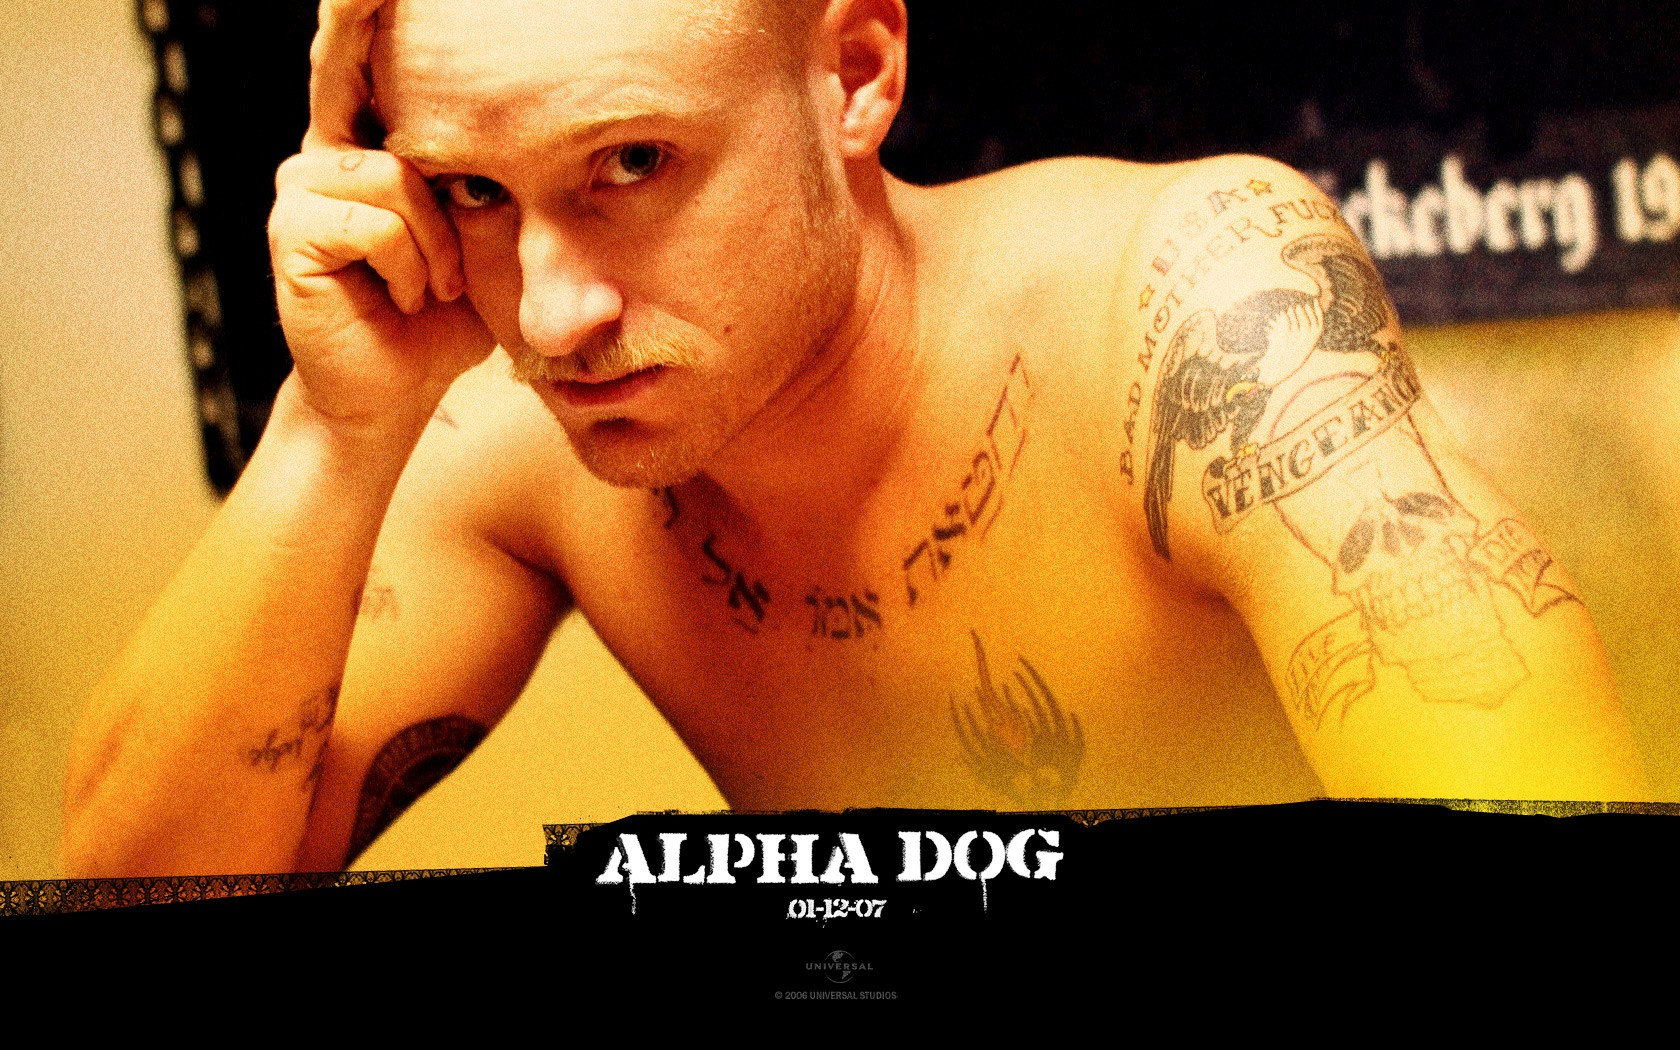 Un wallpaper di Ben Foster nel film 'Alpha Dog'